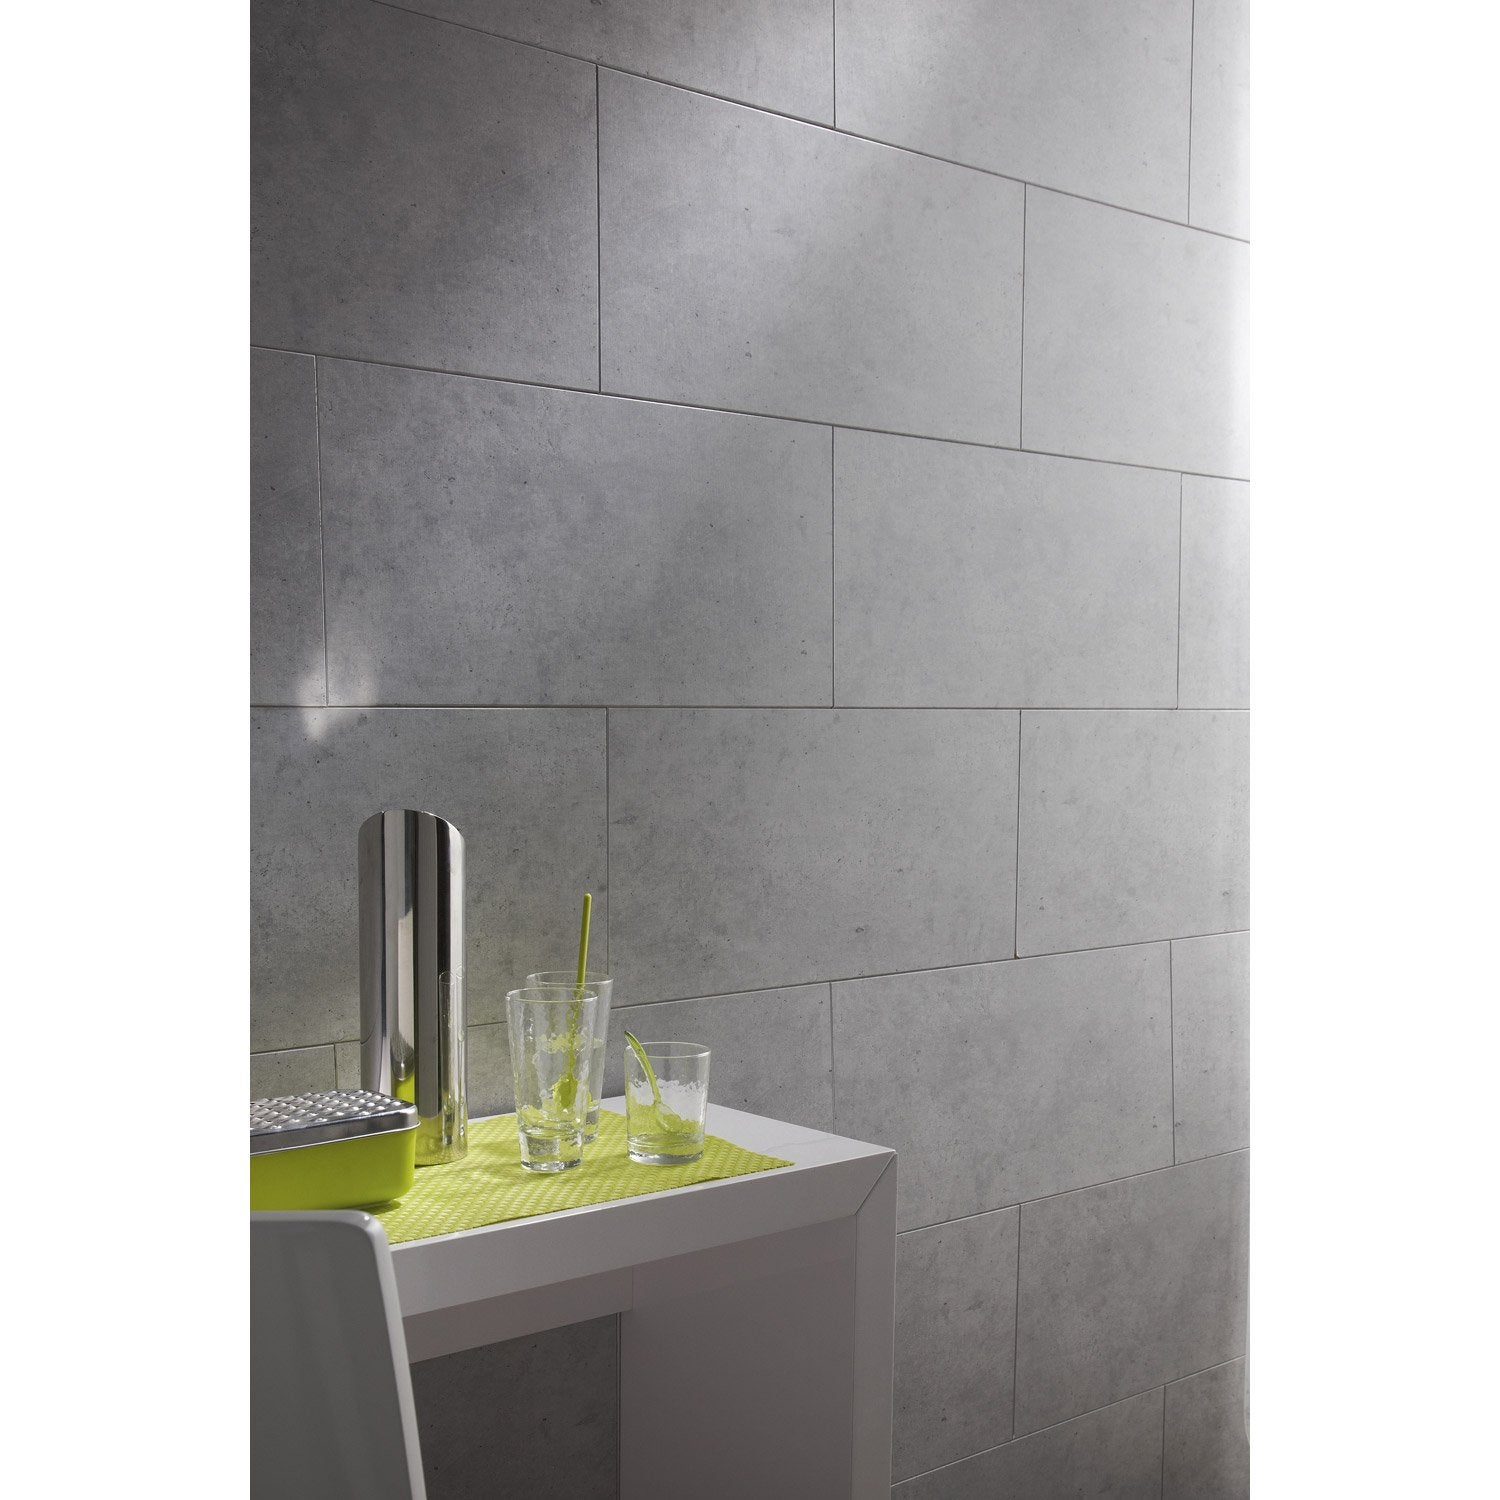 Lambris pvc imitation carrelage maison design for Lambris pvc mural salle de bain